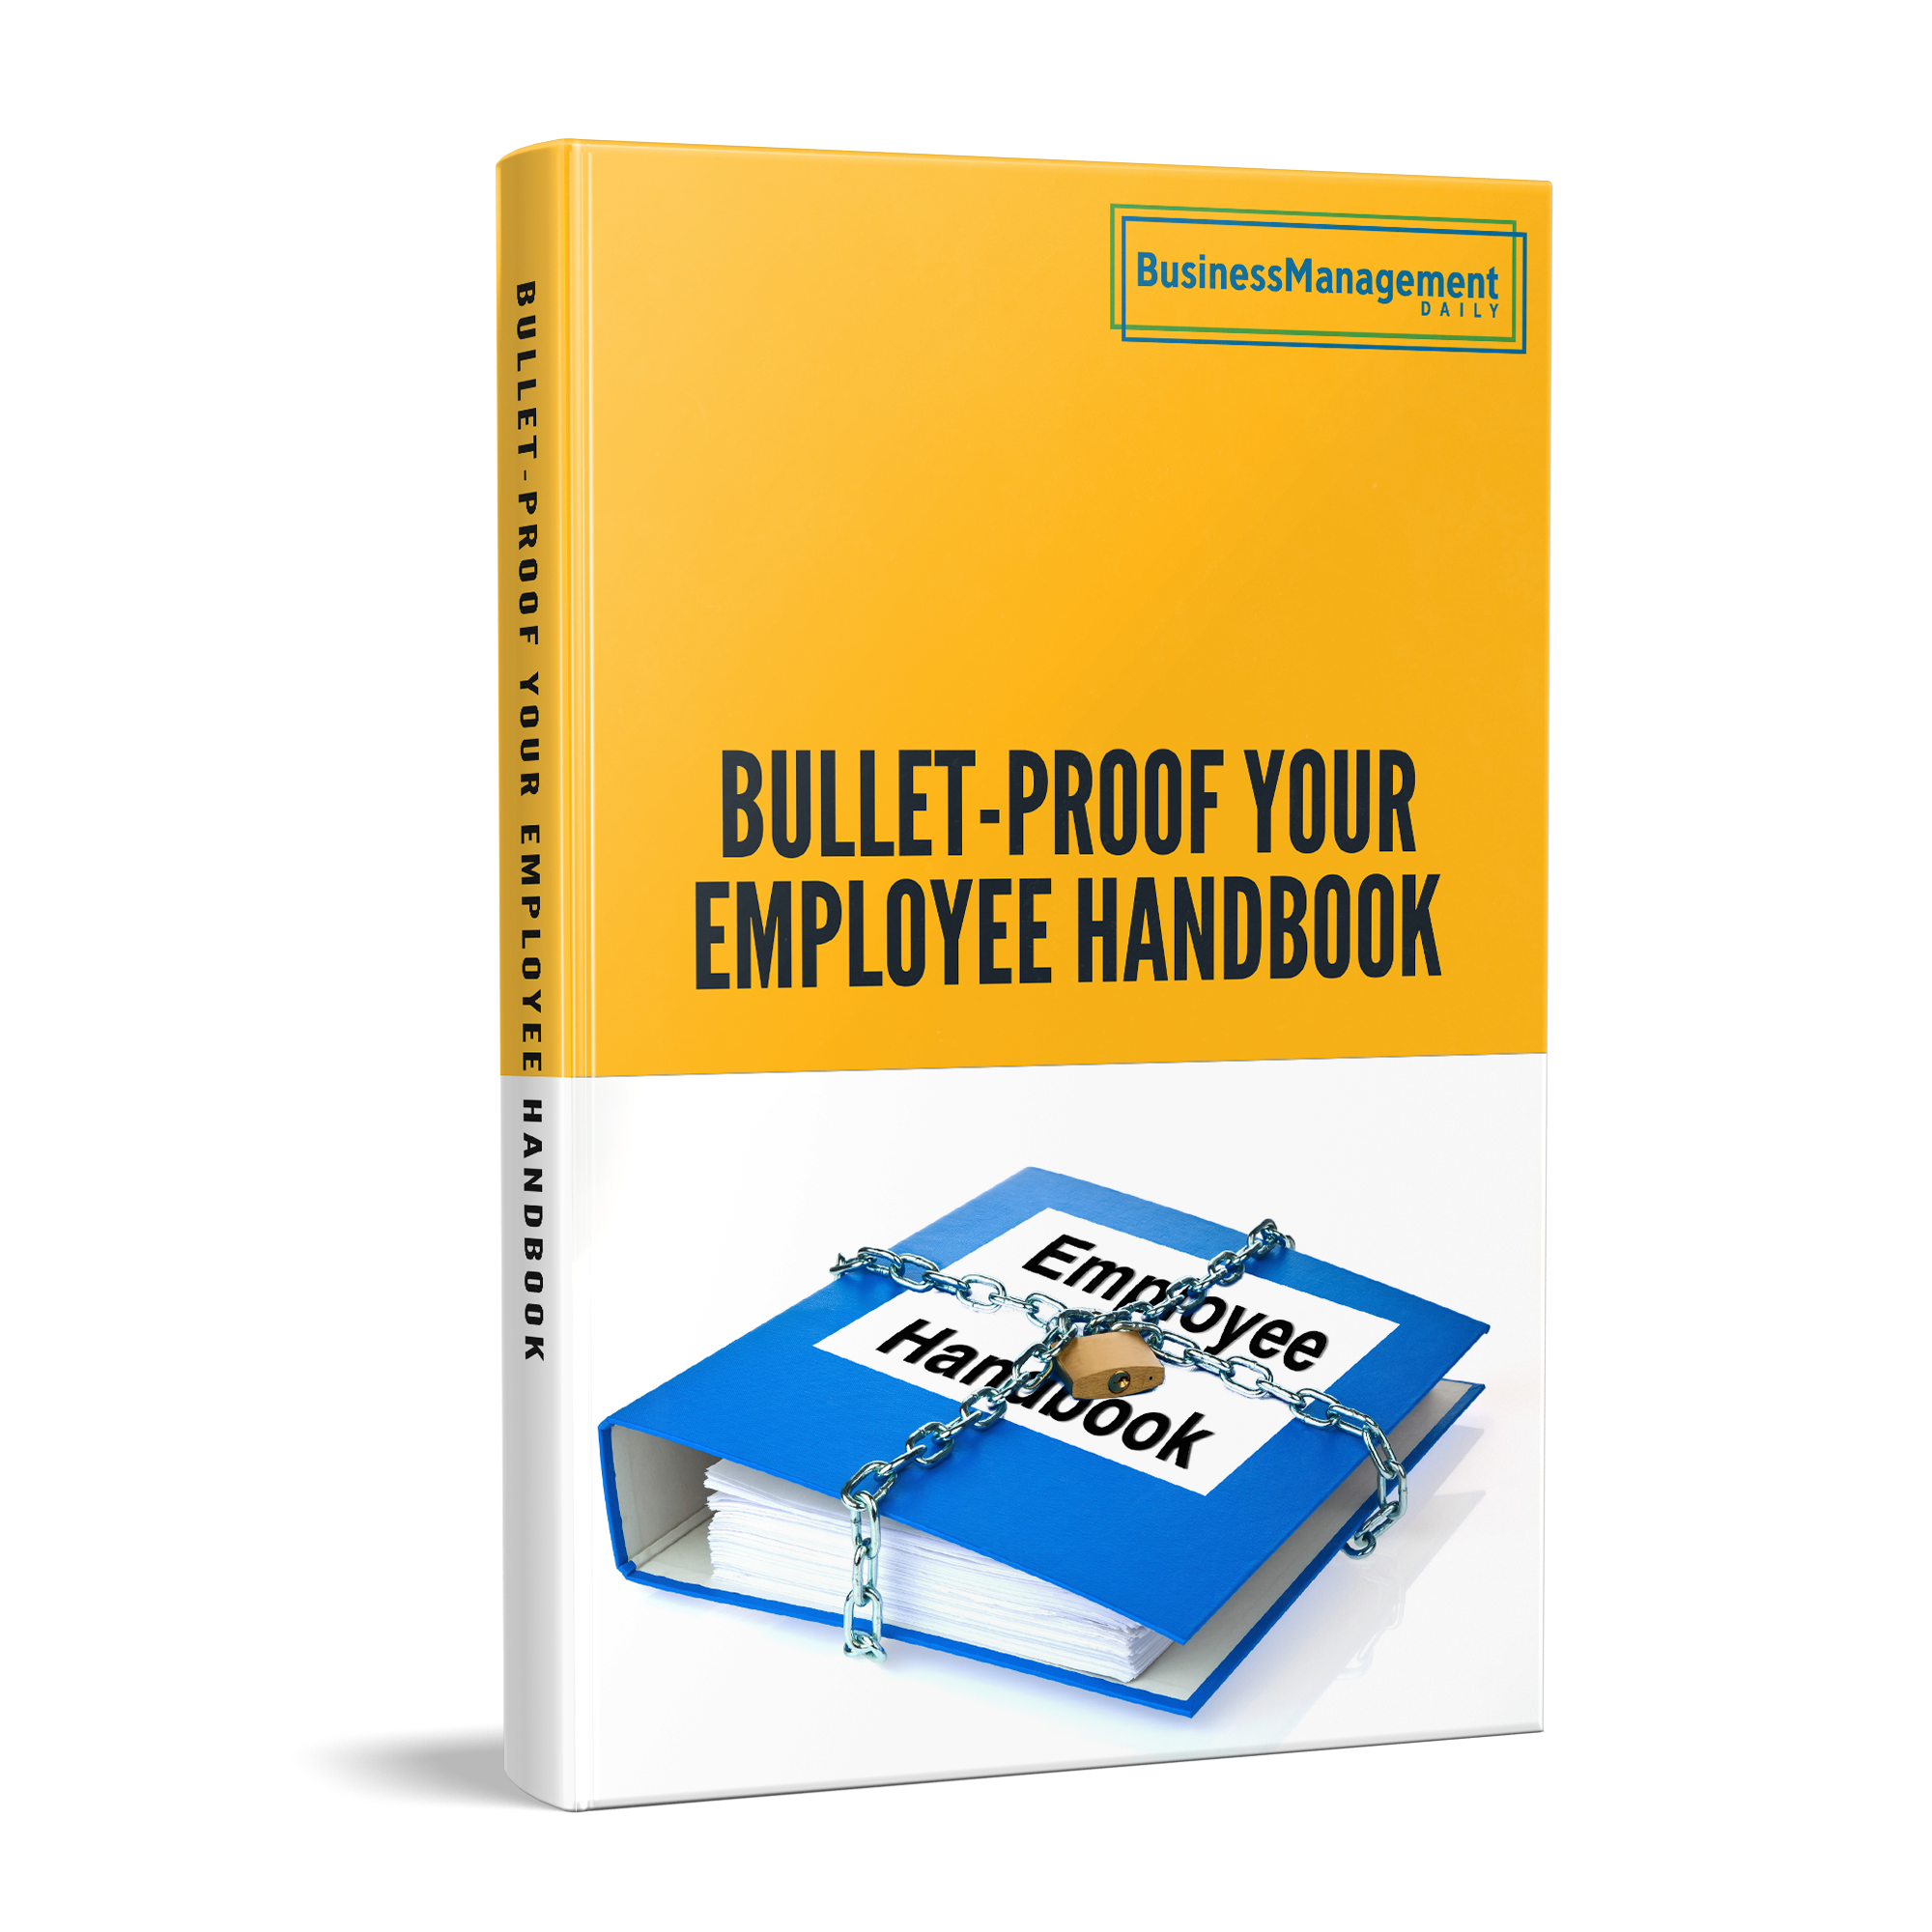 Bullet-Proof Your Employee Handbook Book